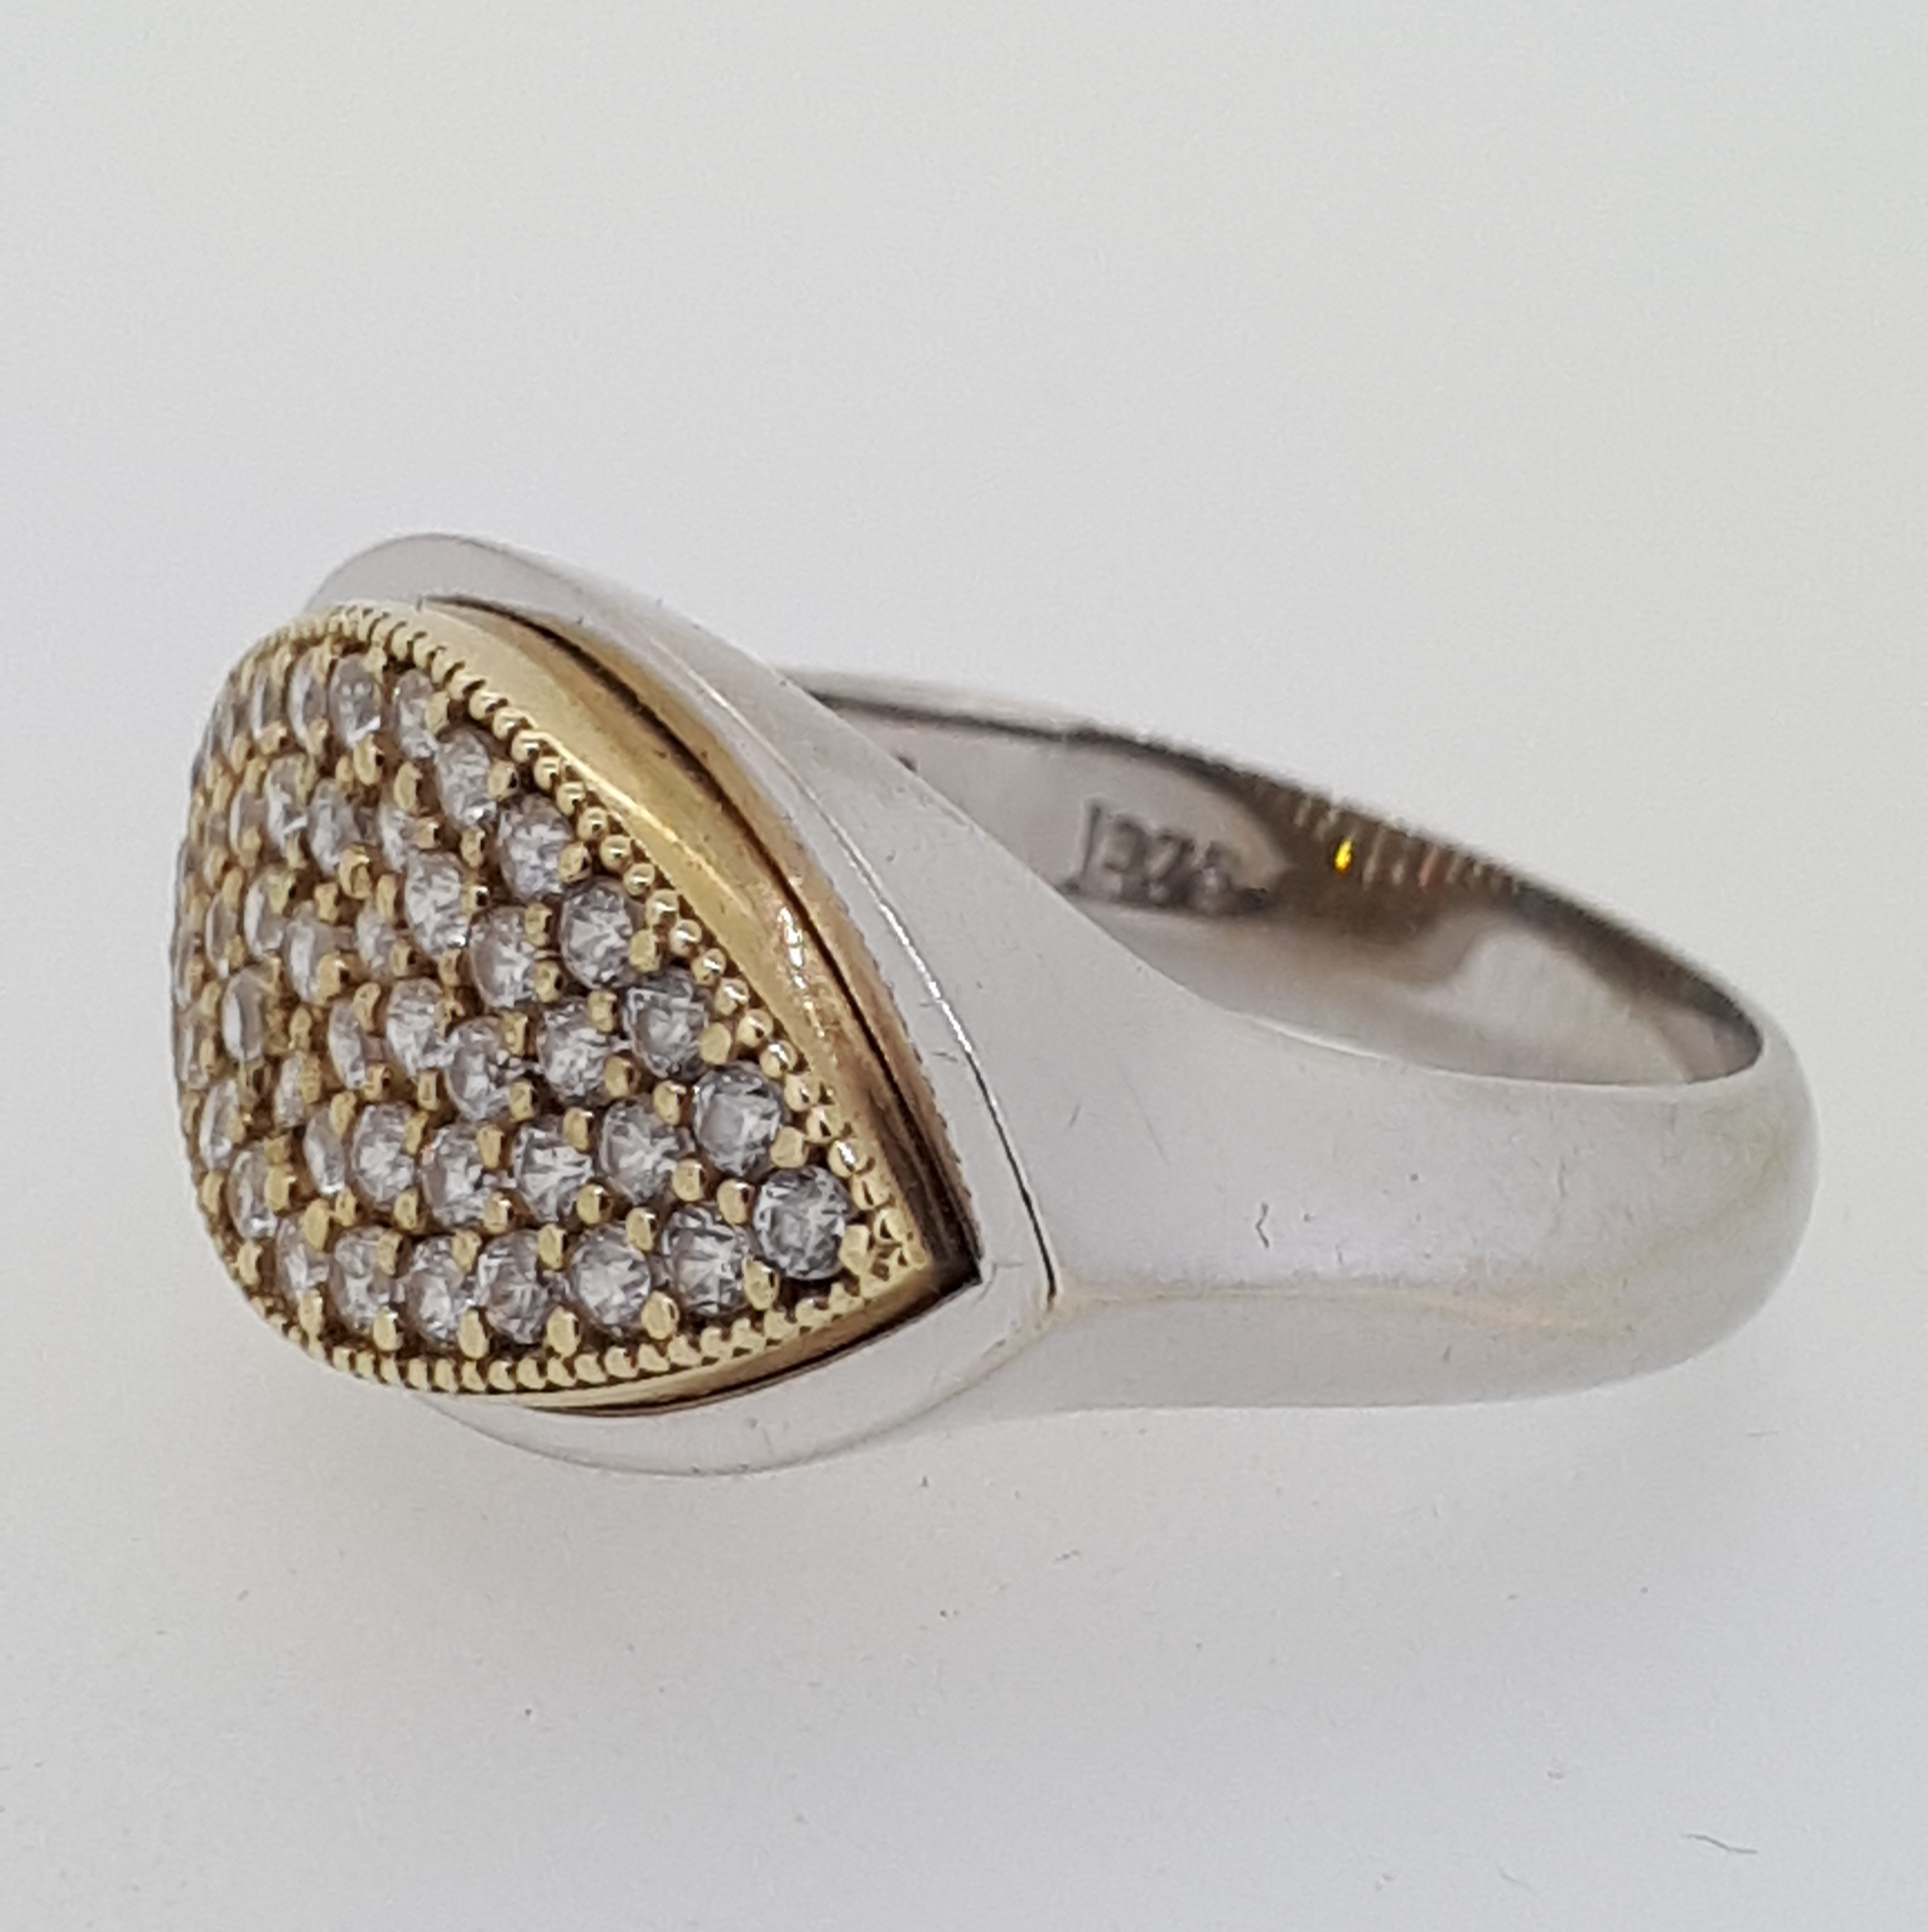 9ct (375) White & Yellow Gold Marquise-Shaped CZ Ring - Image 2 of 4